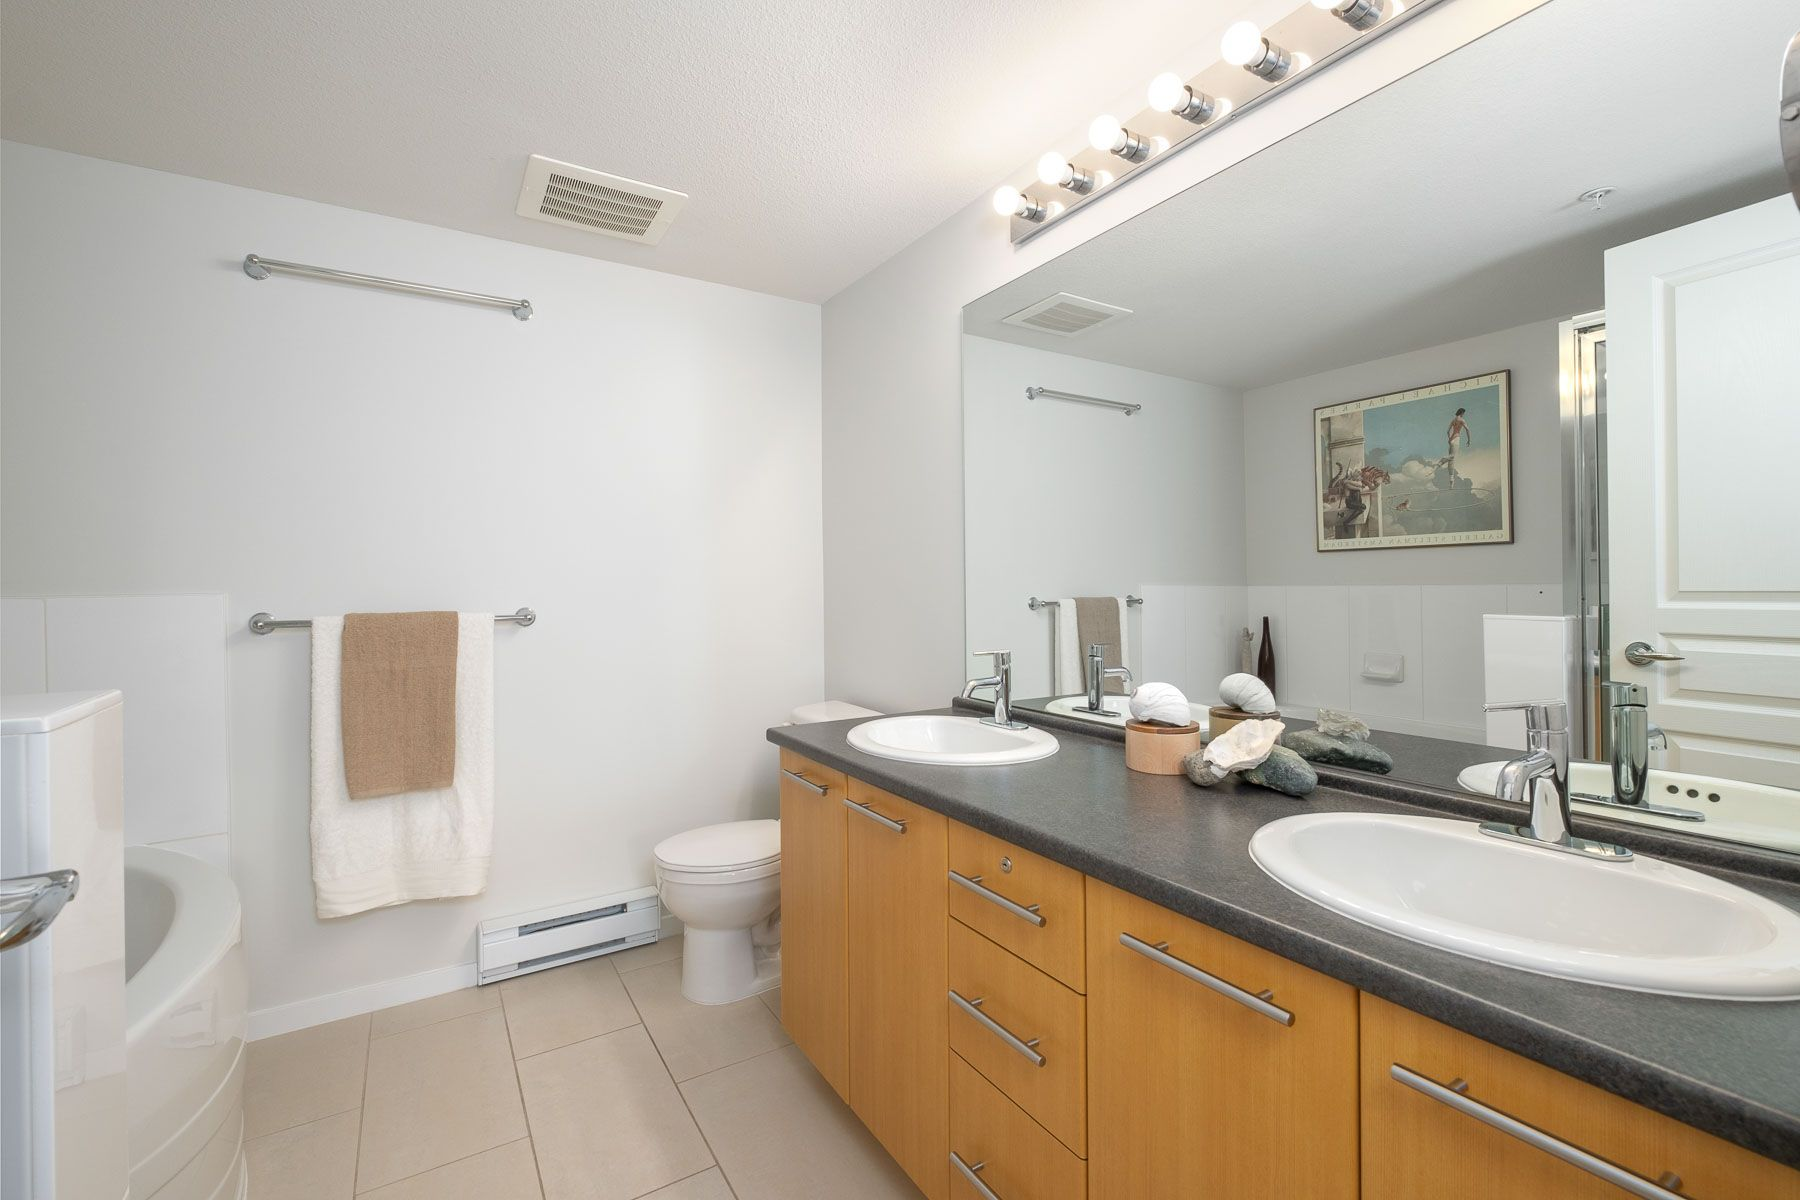 """Photo 17: Photos: 404 9339 UNIVERSITY Crescent in Burnaby: Simon Fraser Univer. Condo for sale in """"HARMONY AT THE HIGHLANDS"""" (Burnaby North)  : MLS®# R2578073"""